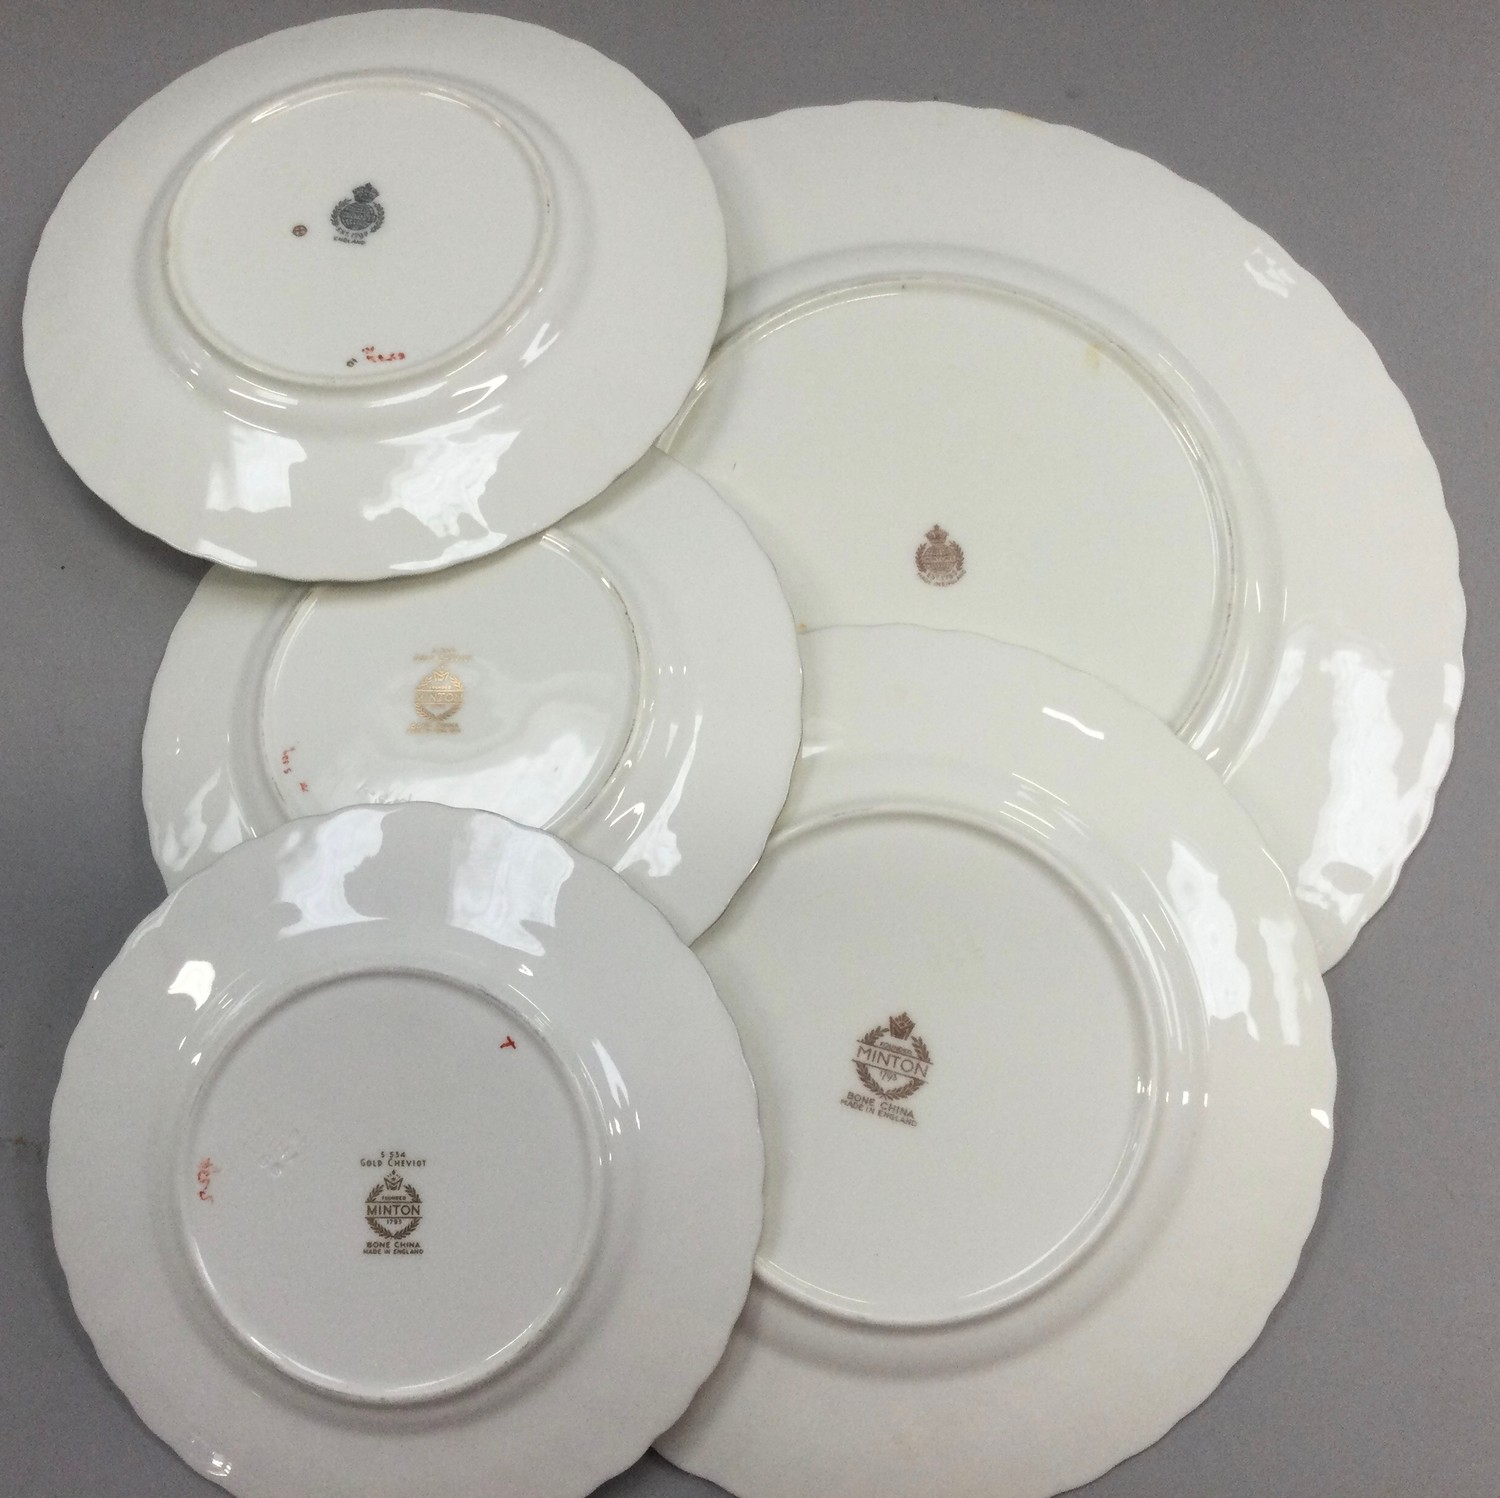 """Minton """"Gold Cheviot"""" part dinner service comprising dinner, side and dessert plates. - Image 2 of 2"""